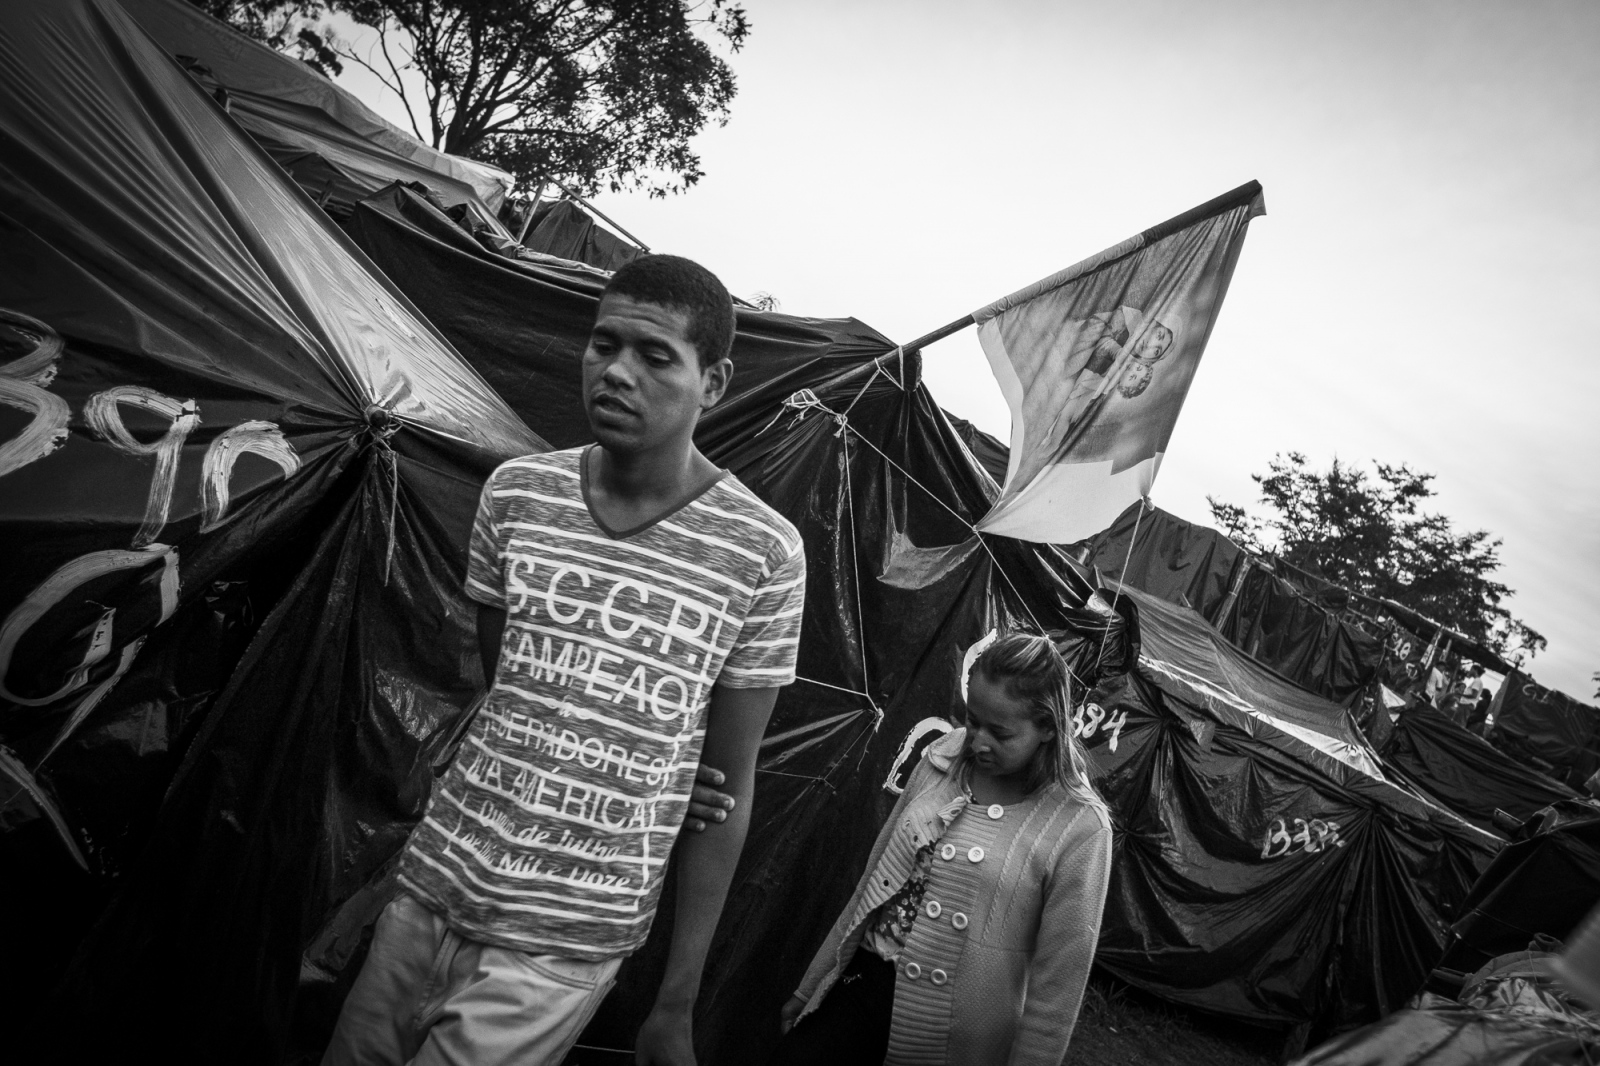 People living in  Copa do Povo (People's Cup) Camp pass in front of a shack with a flag with Jesus and Maria. Even after all adversity people didn't lost their faith. The Copa do Povo Camp, is just a few miles from the Arena Corinthians and has 5,000 homeless workers and their families occupied area of fifteen acres. They are homeless after rents skyrocketed because of the World Cup.